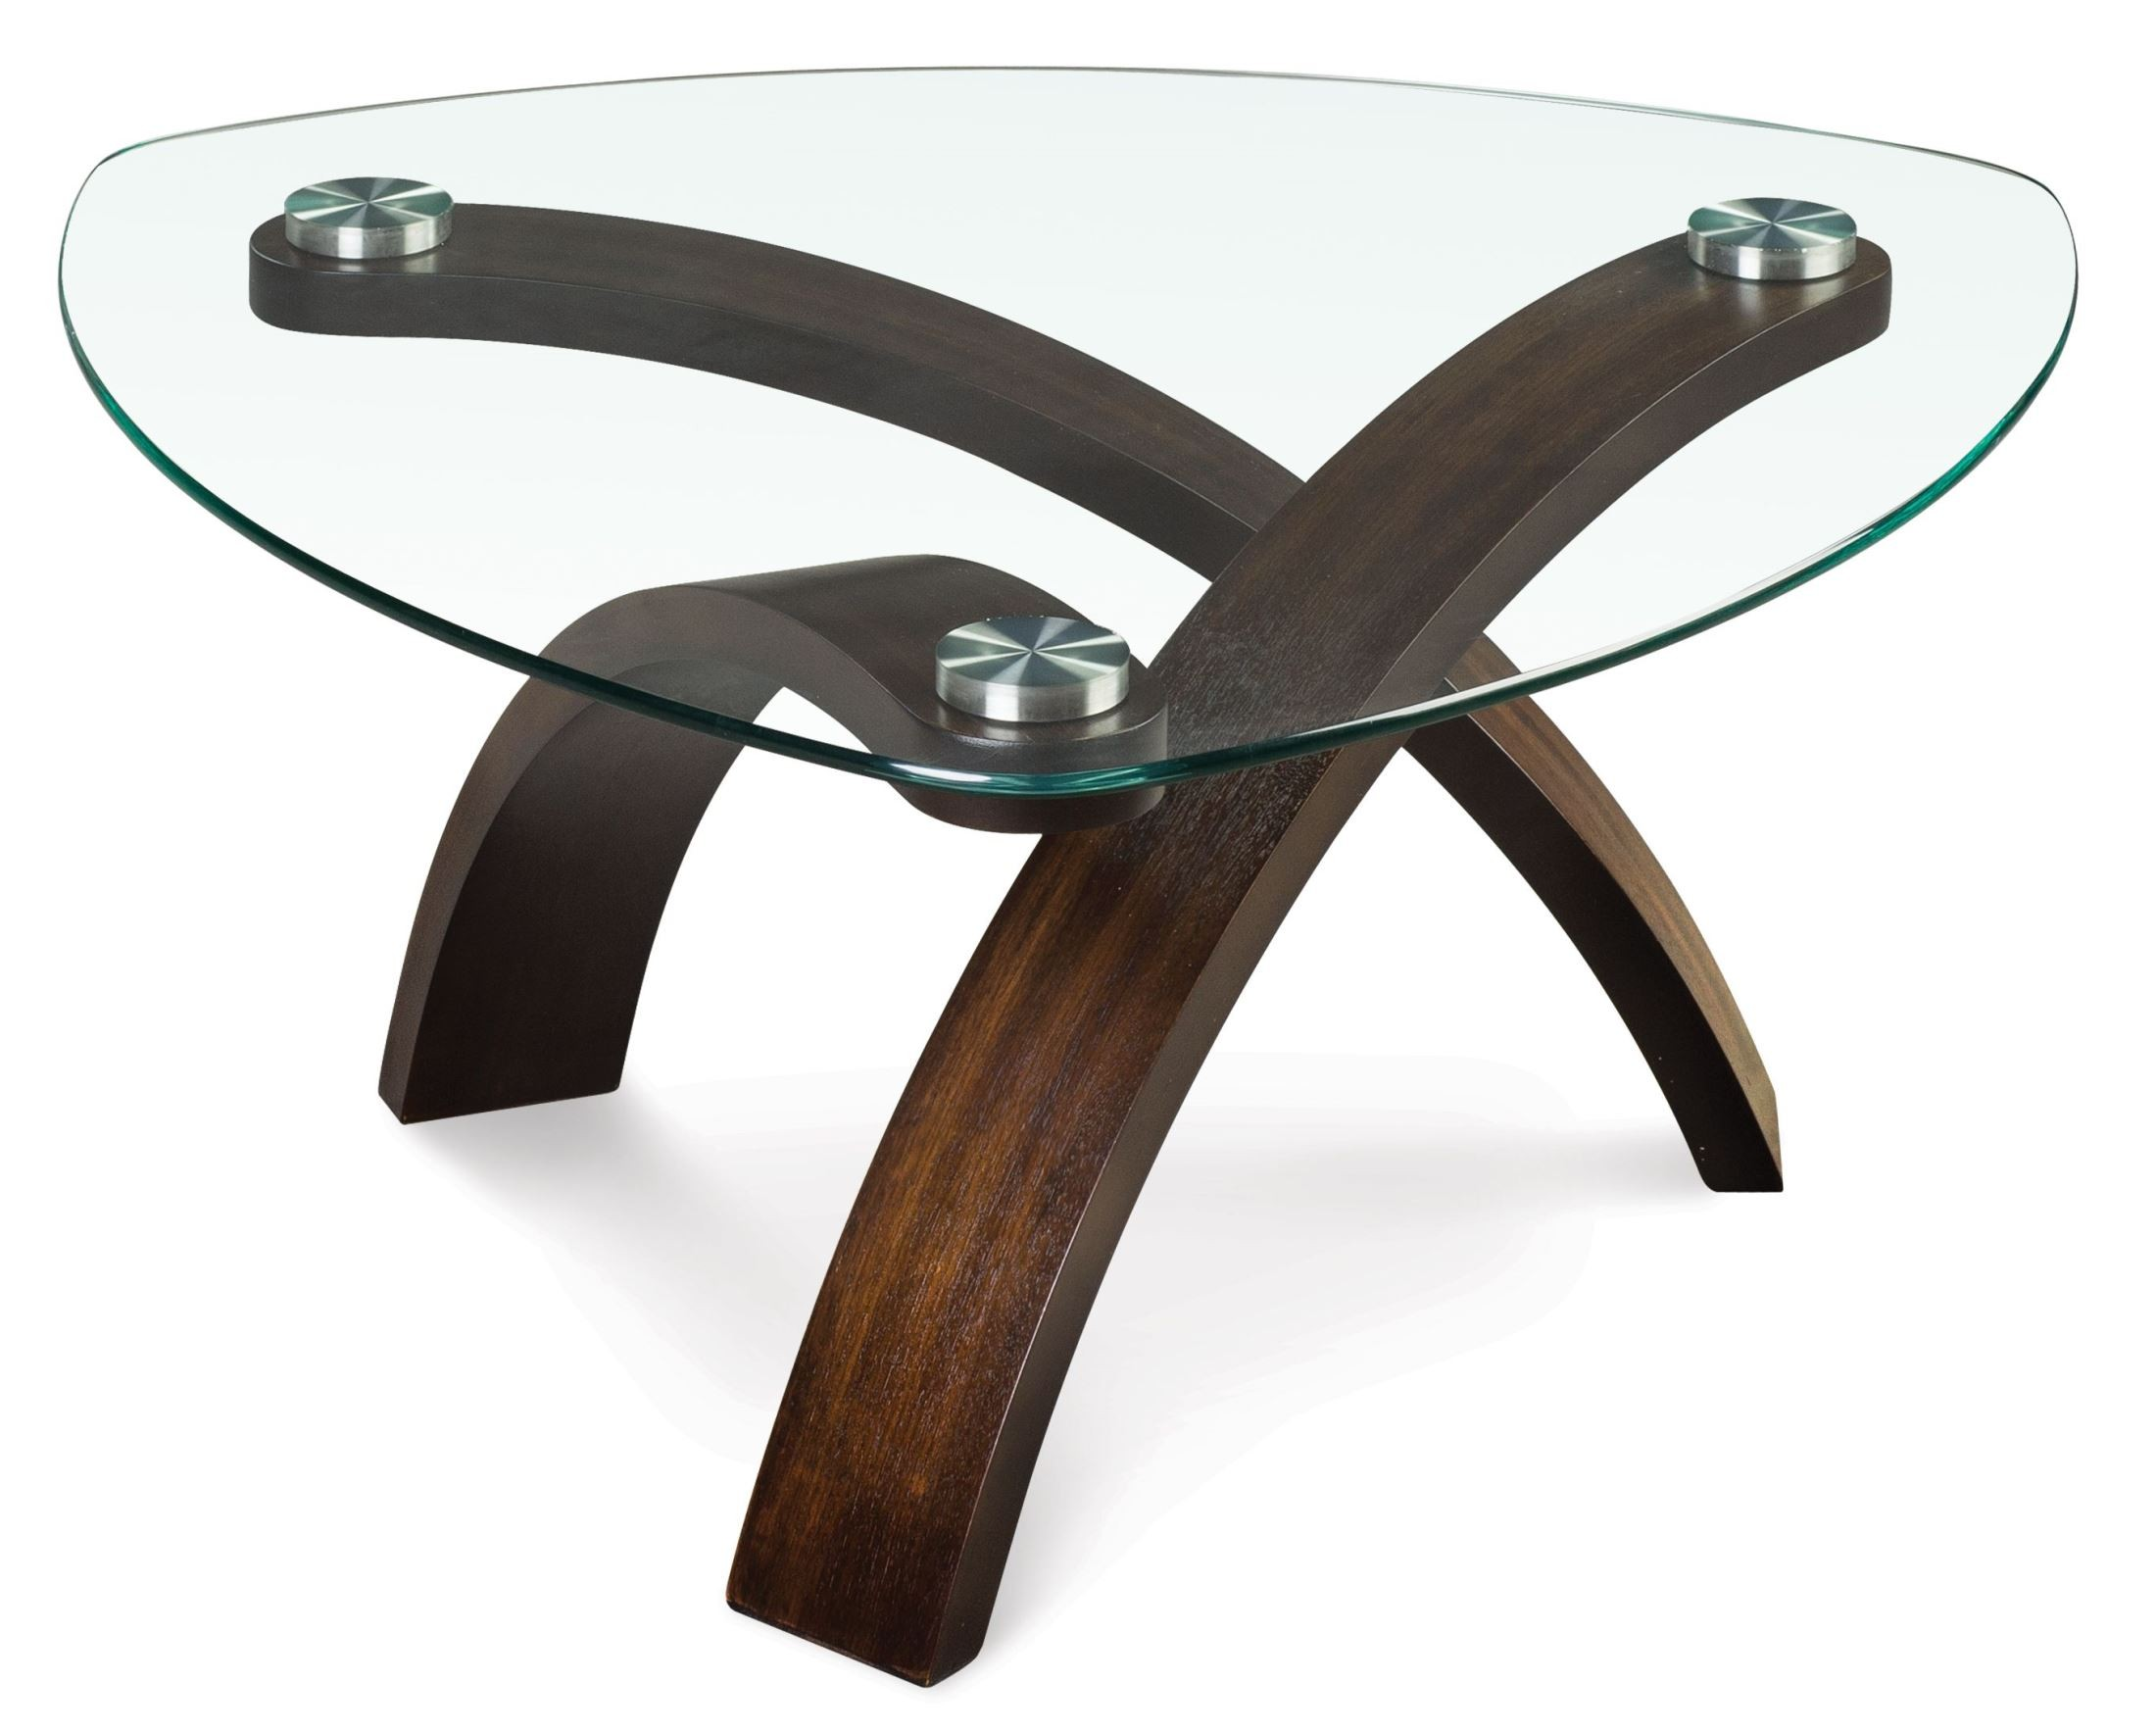 Allure pie shaped cocktail table from magnussen home t1396 65t b coleman furniture Pie shaped coffee table